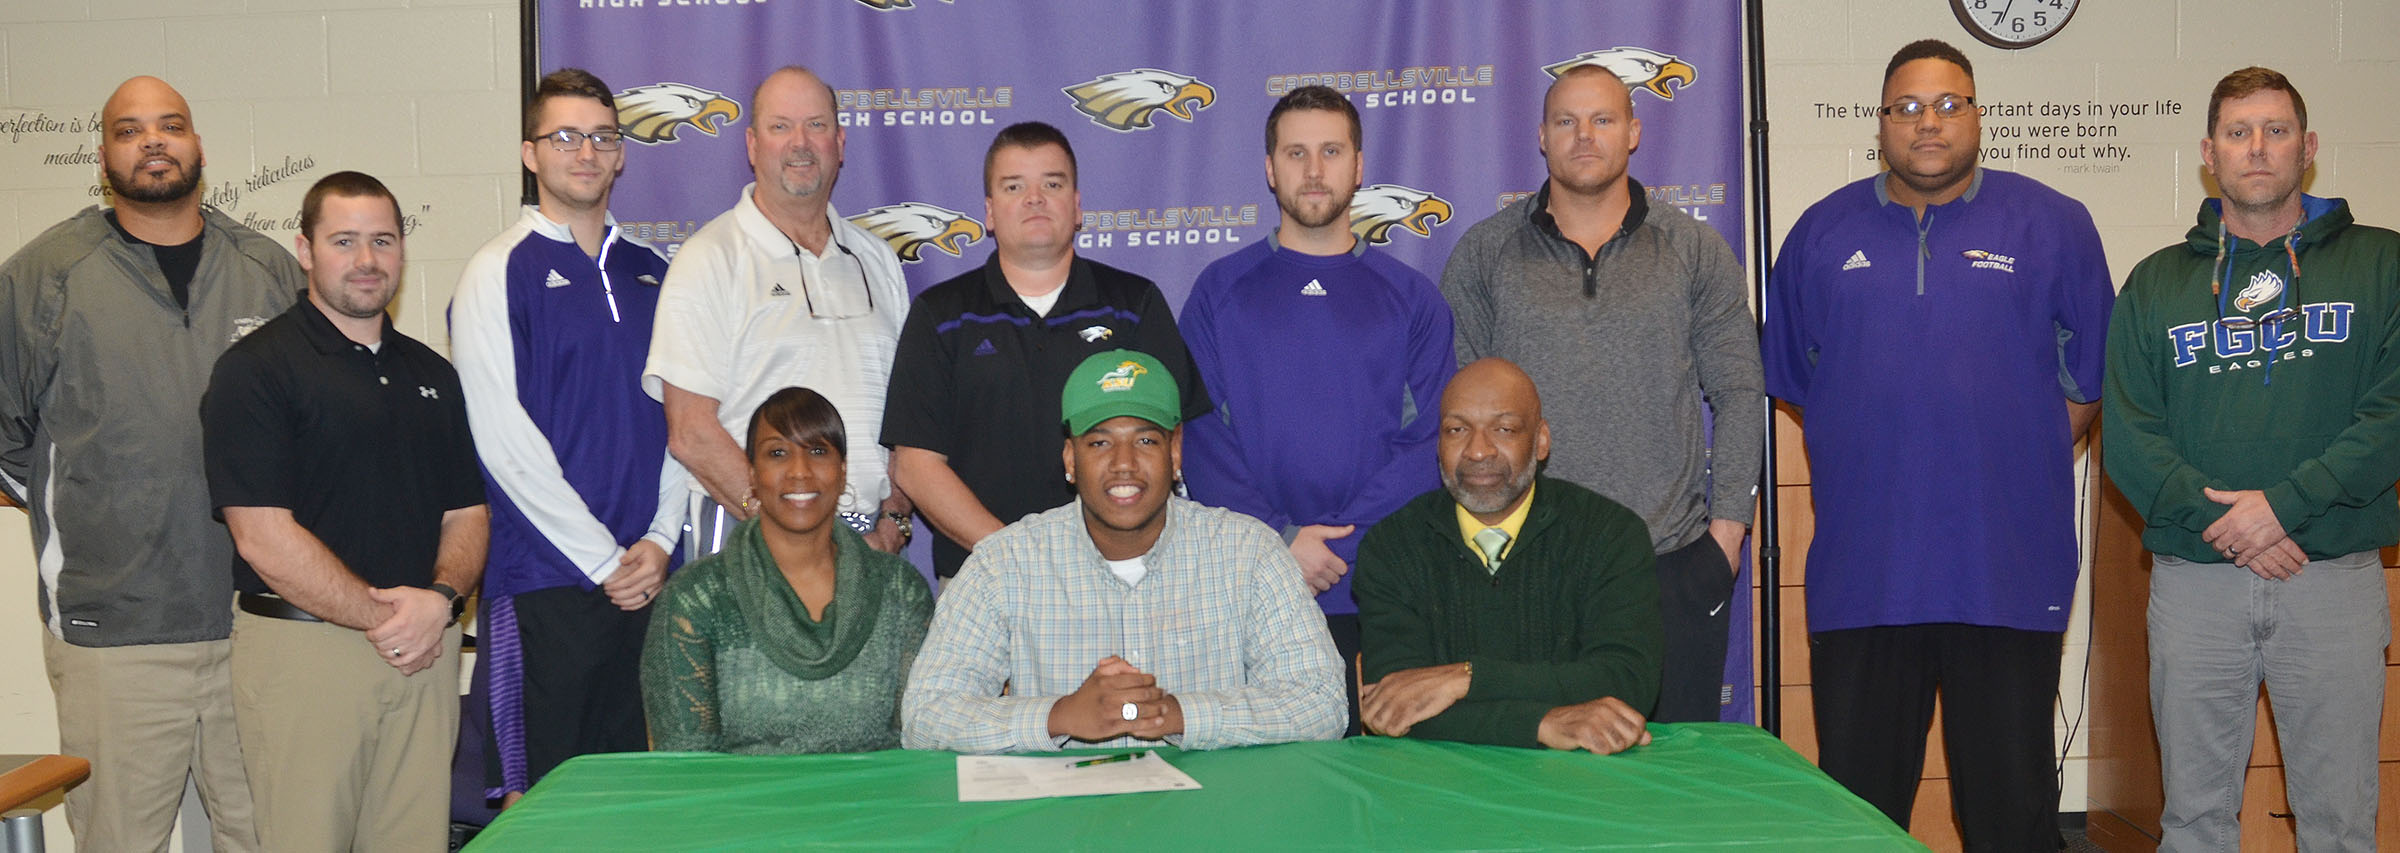 "CHS seniors Micah Corley and Arick Groves will continue their academic and football careers at Kentucky State University this fall. The two signed their letters of intent in a special ceremony on Monday, Feb. 6. Attending with Corley, front, center, are his mother Latonya Bridgewater and stepfather Wilando ""Chop"" Bridgewater. Back, CHS assistant football coaches Aaron Webb, Blake Milby and Cody Wills, CHS Athletic Director Tim Davis, head football coach Dale Estes and assistant football coaches Tyler Hardy, Robbie Gribbins, Bronson Gowdy and Herb Wiseman."